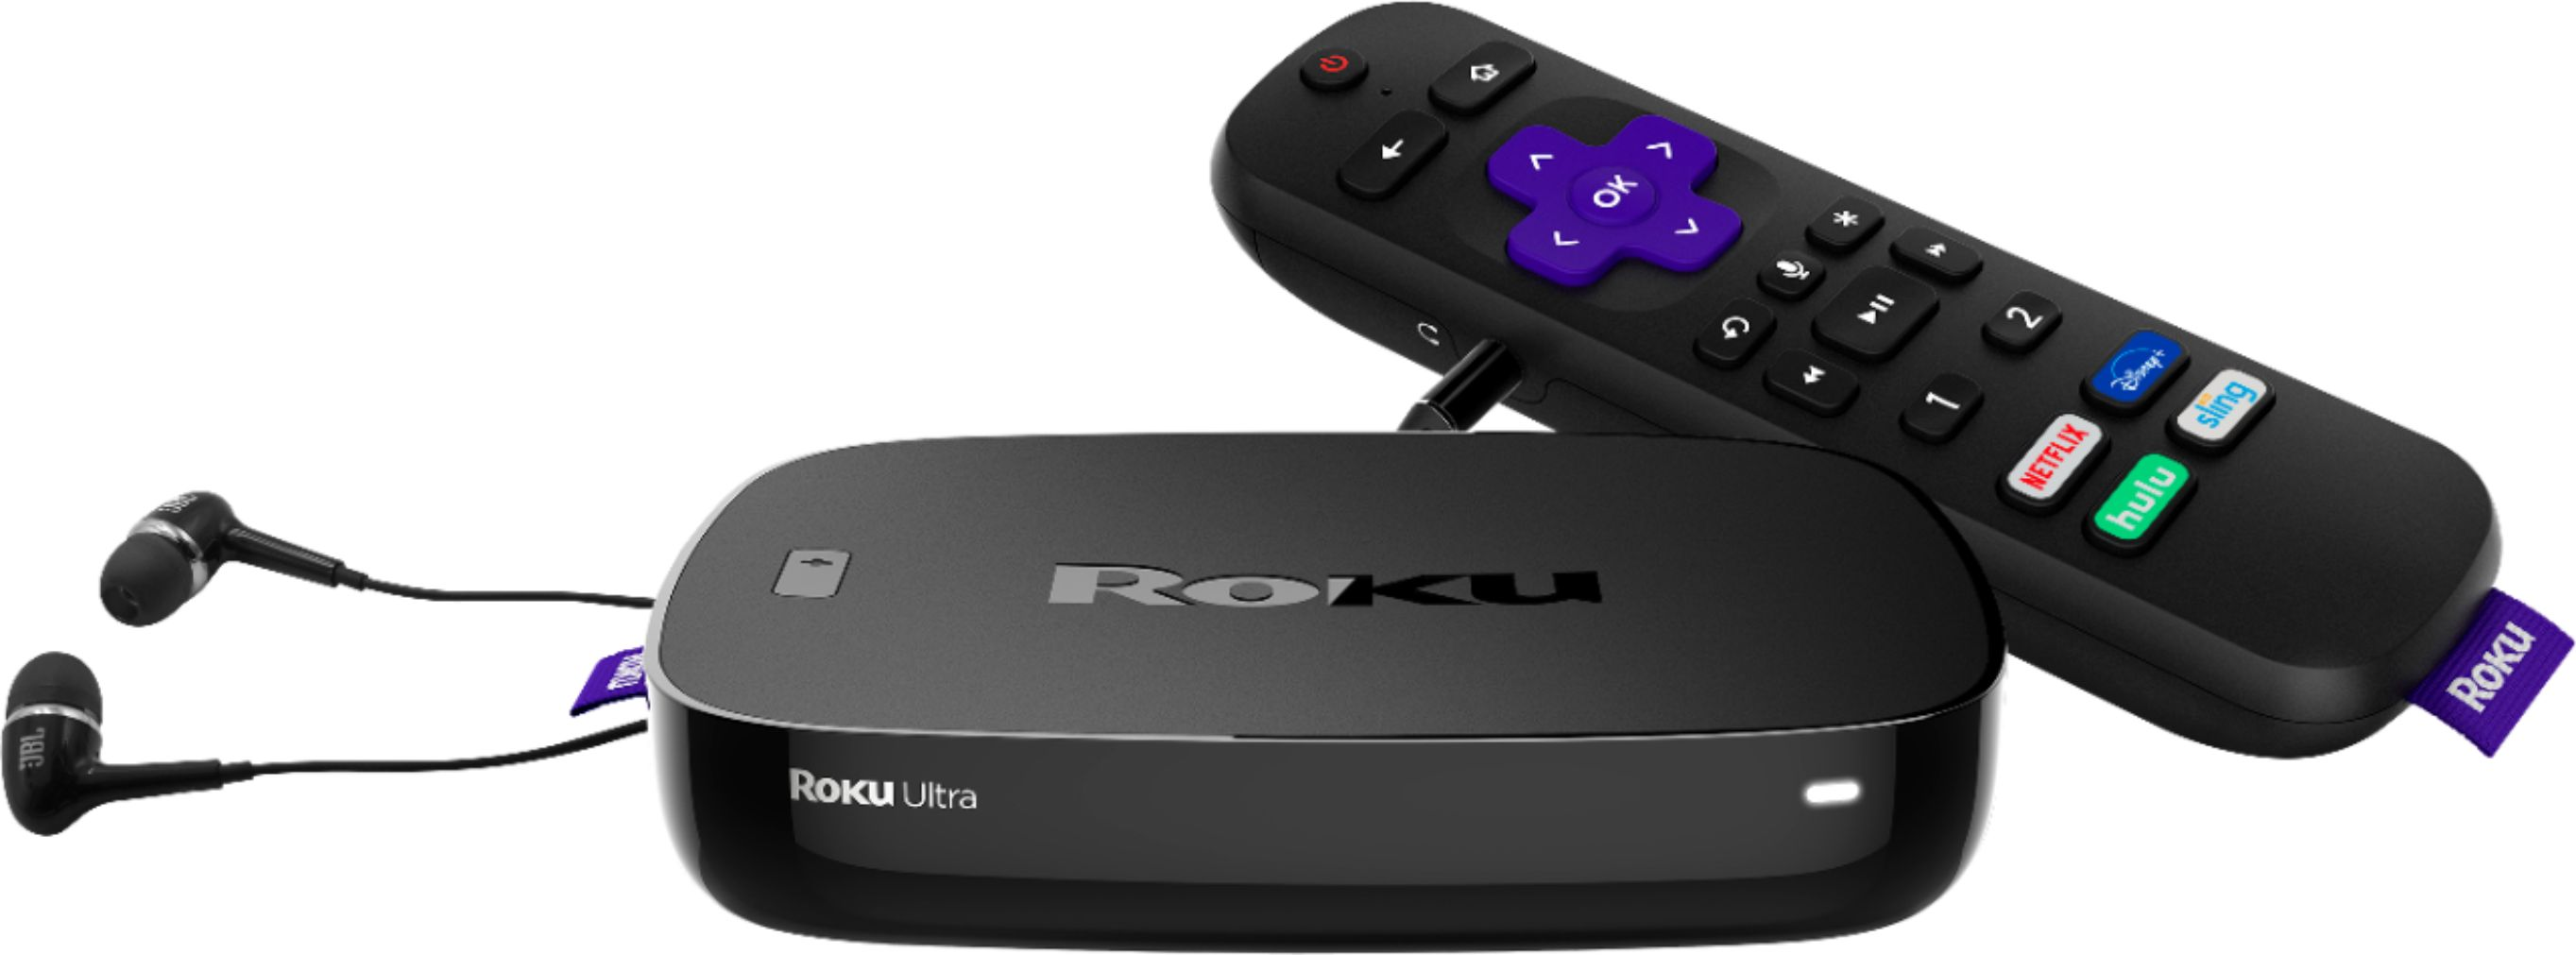 Roku - Ultra 4K Streaming Media Player with JBL Headphones and Enhanced Voice Remote - Black